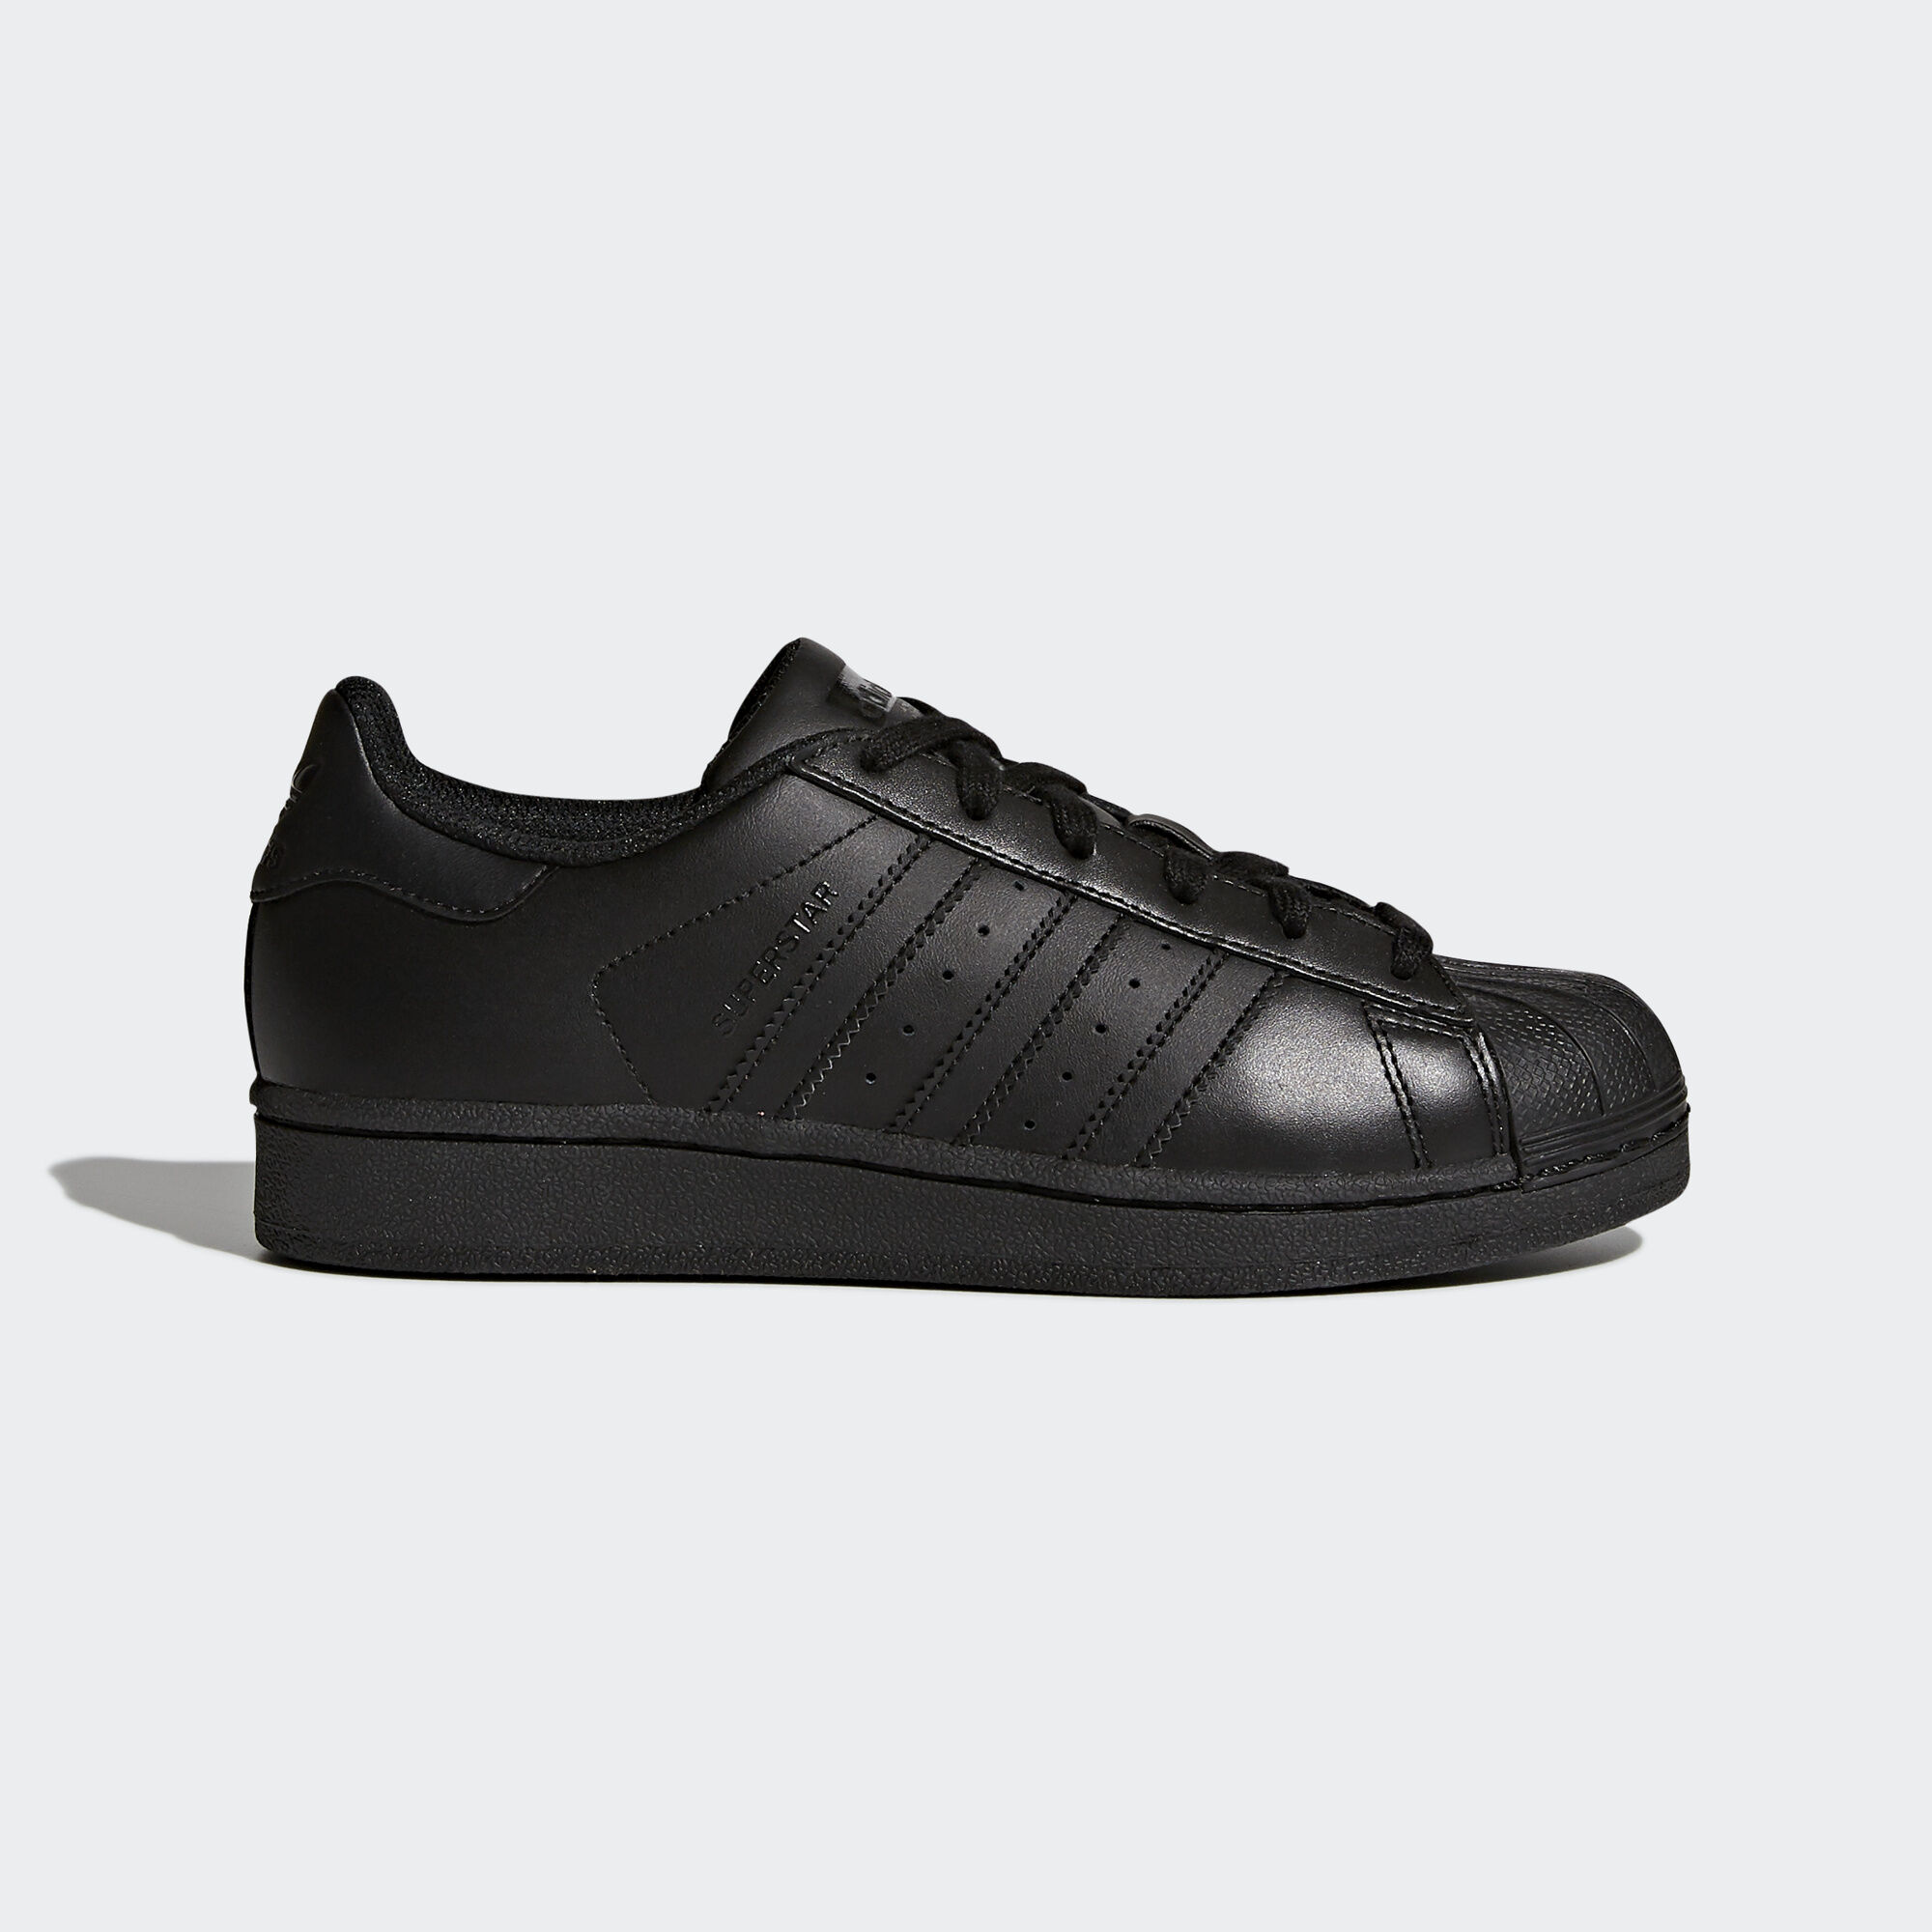 adidas superstar originals size 5